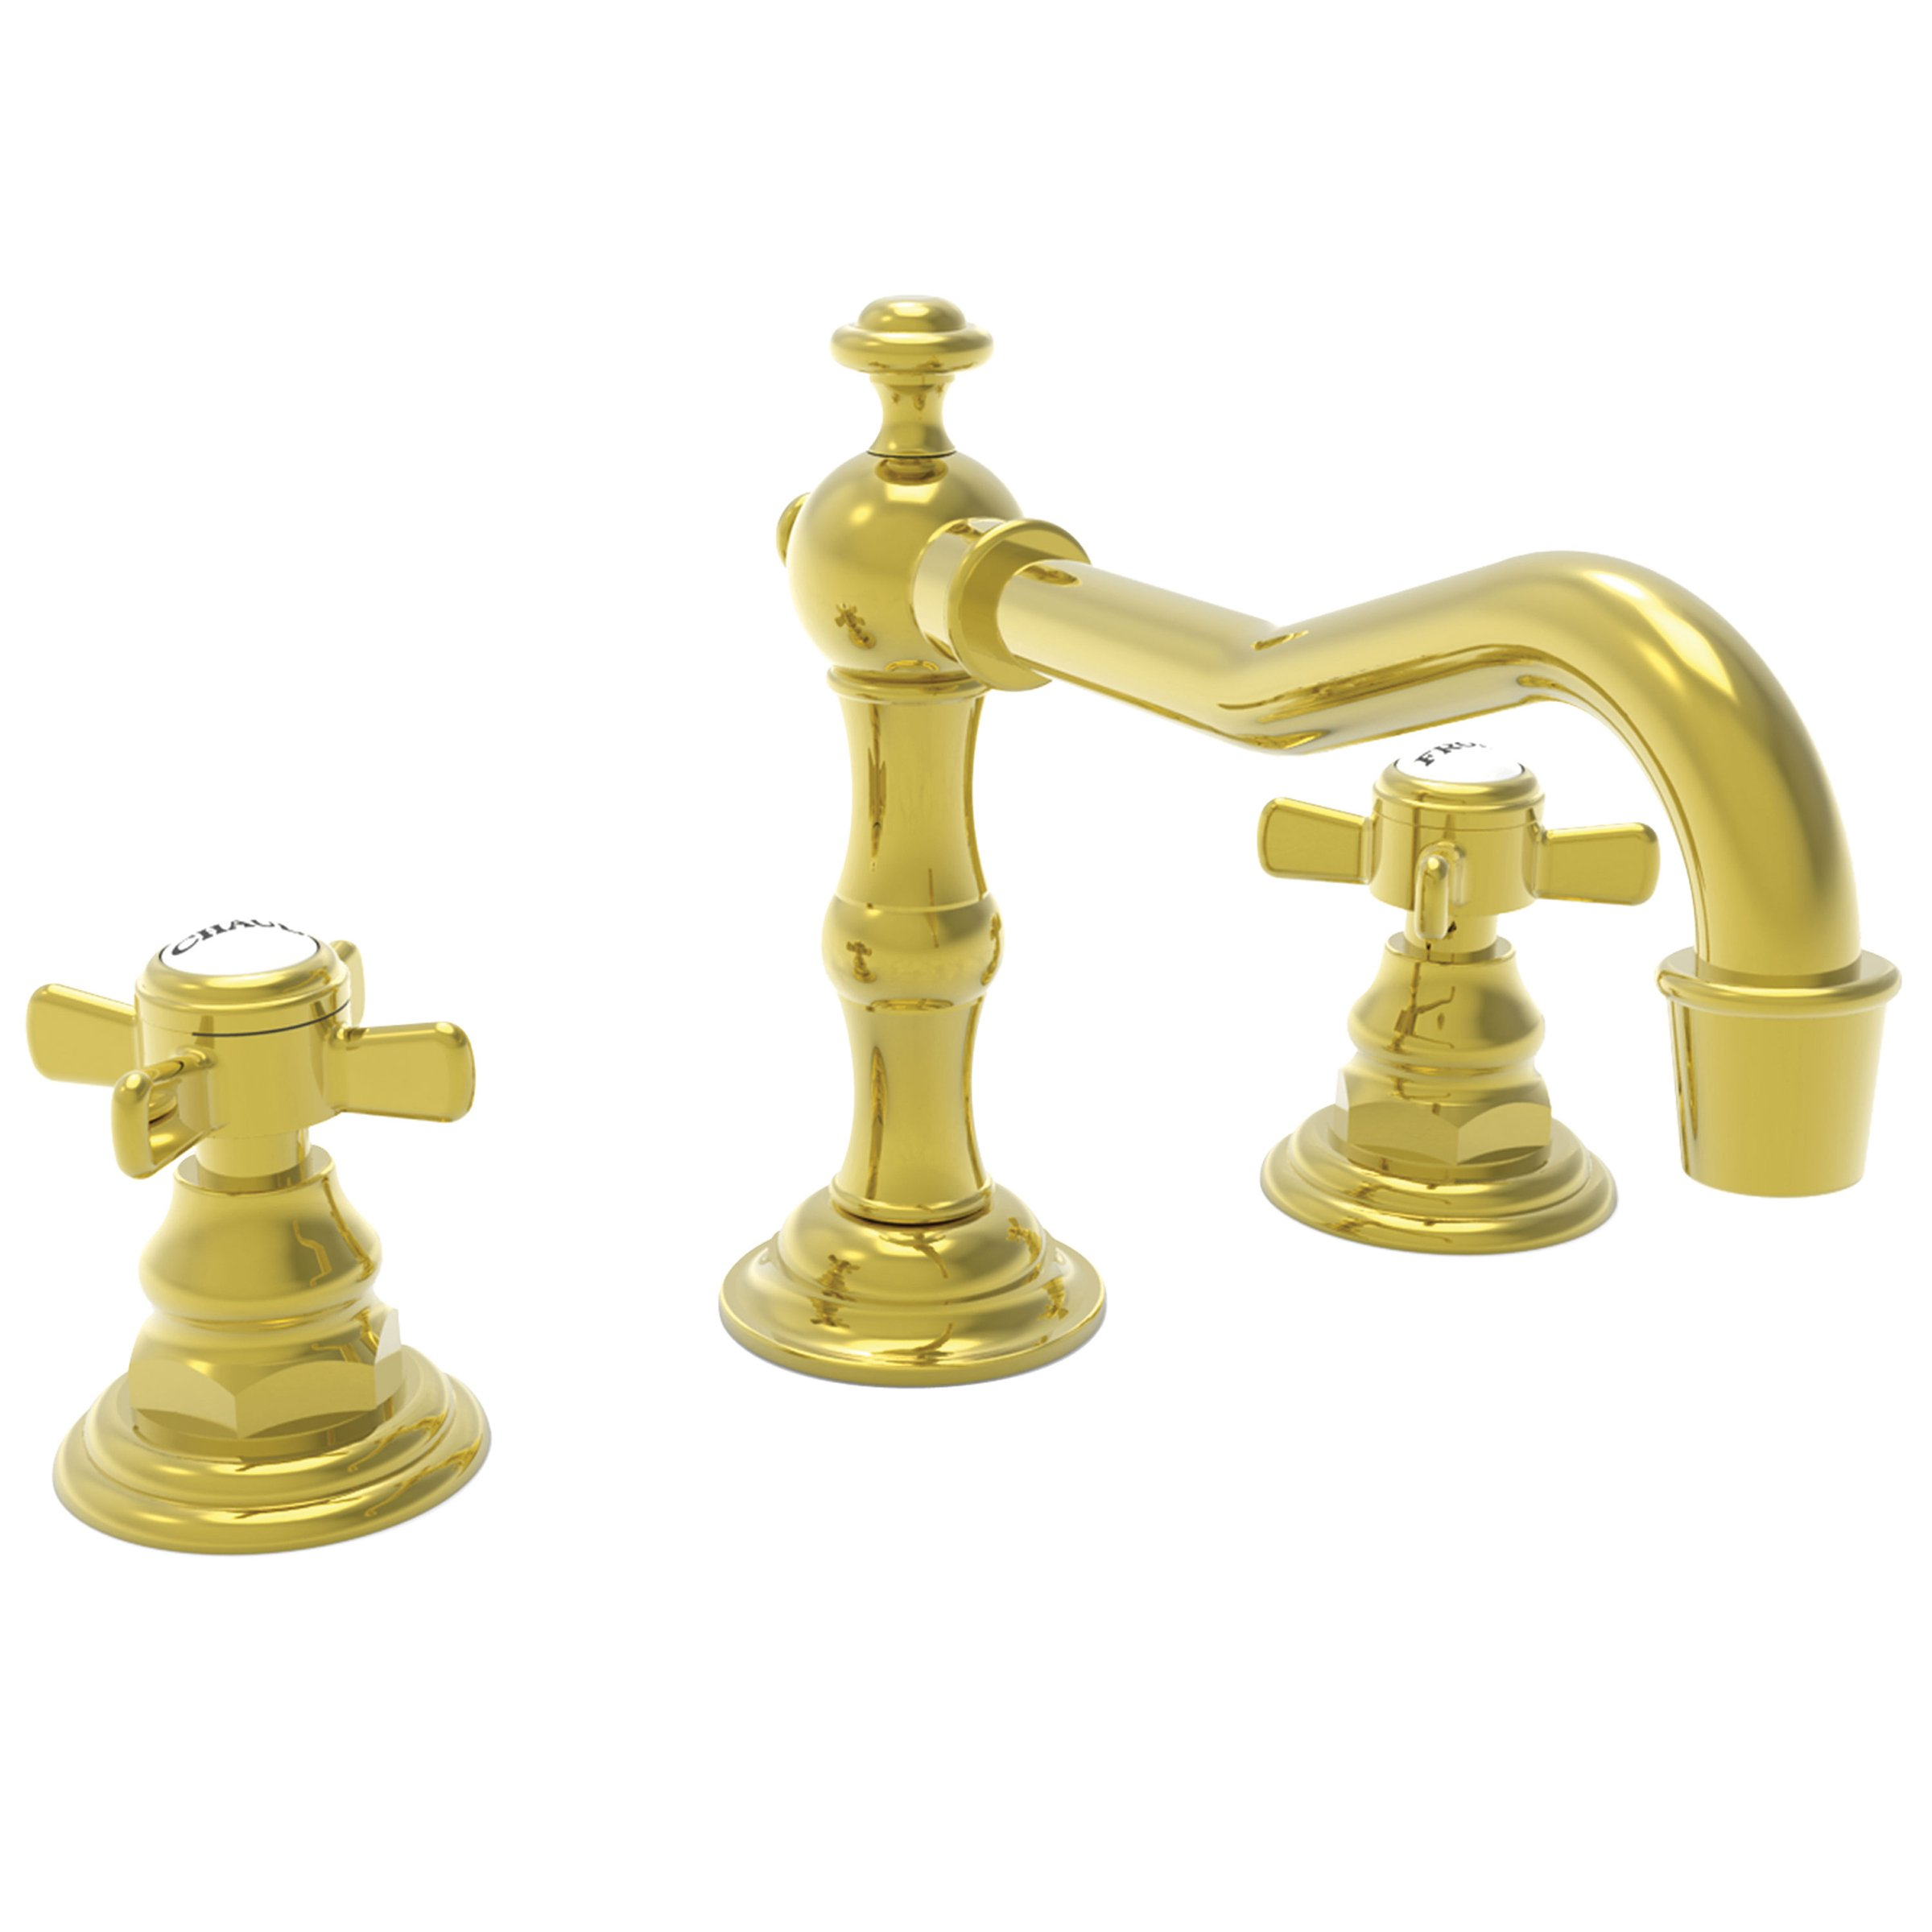 Newport Brass 1000 Widespread Faucet W Bladex Hdl Newport Brass Faucets